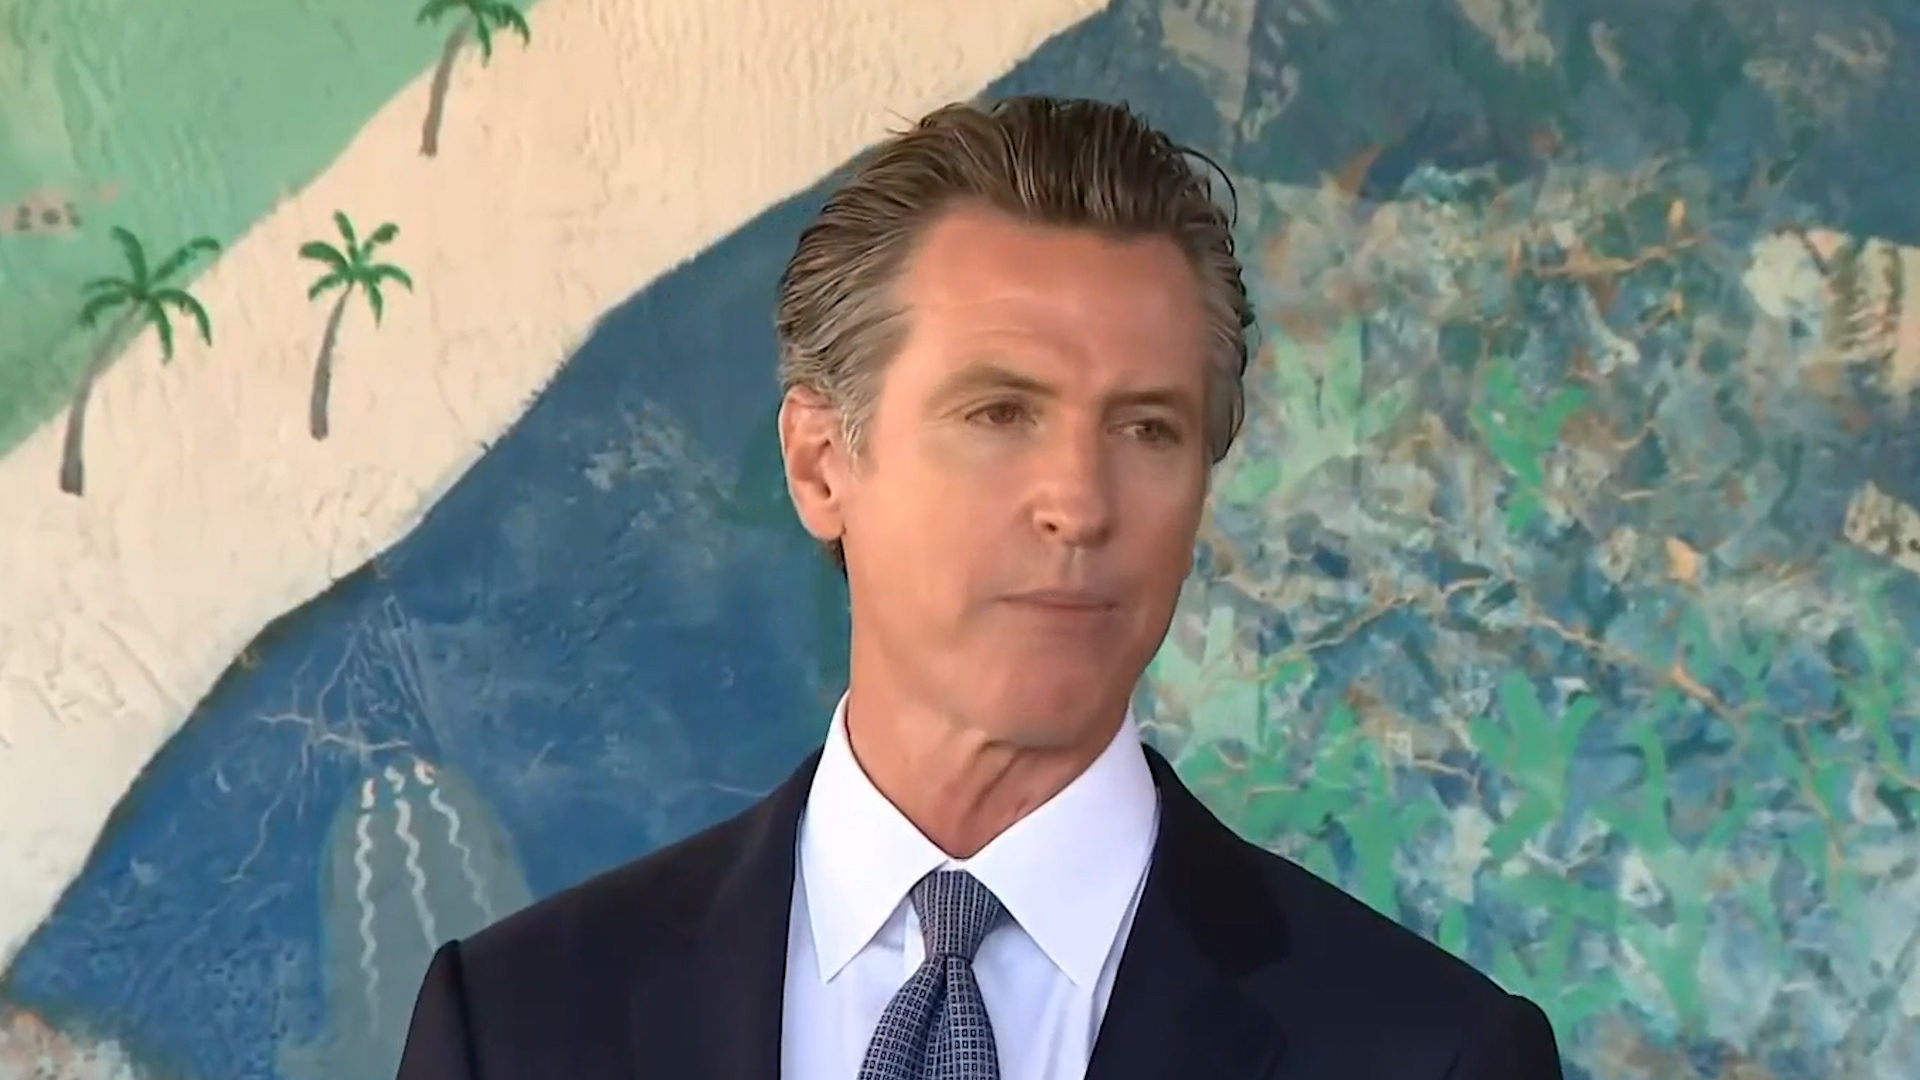 Covid policies led to trouble for Newsom. Now they could secure his future.